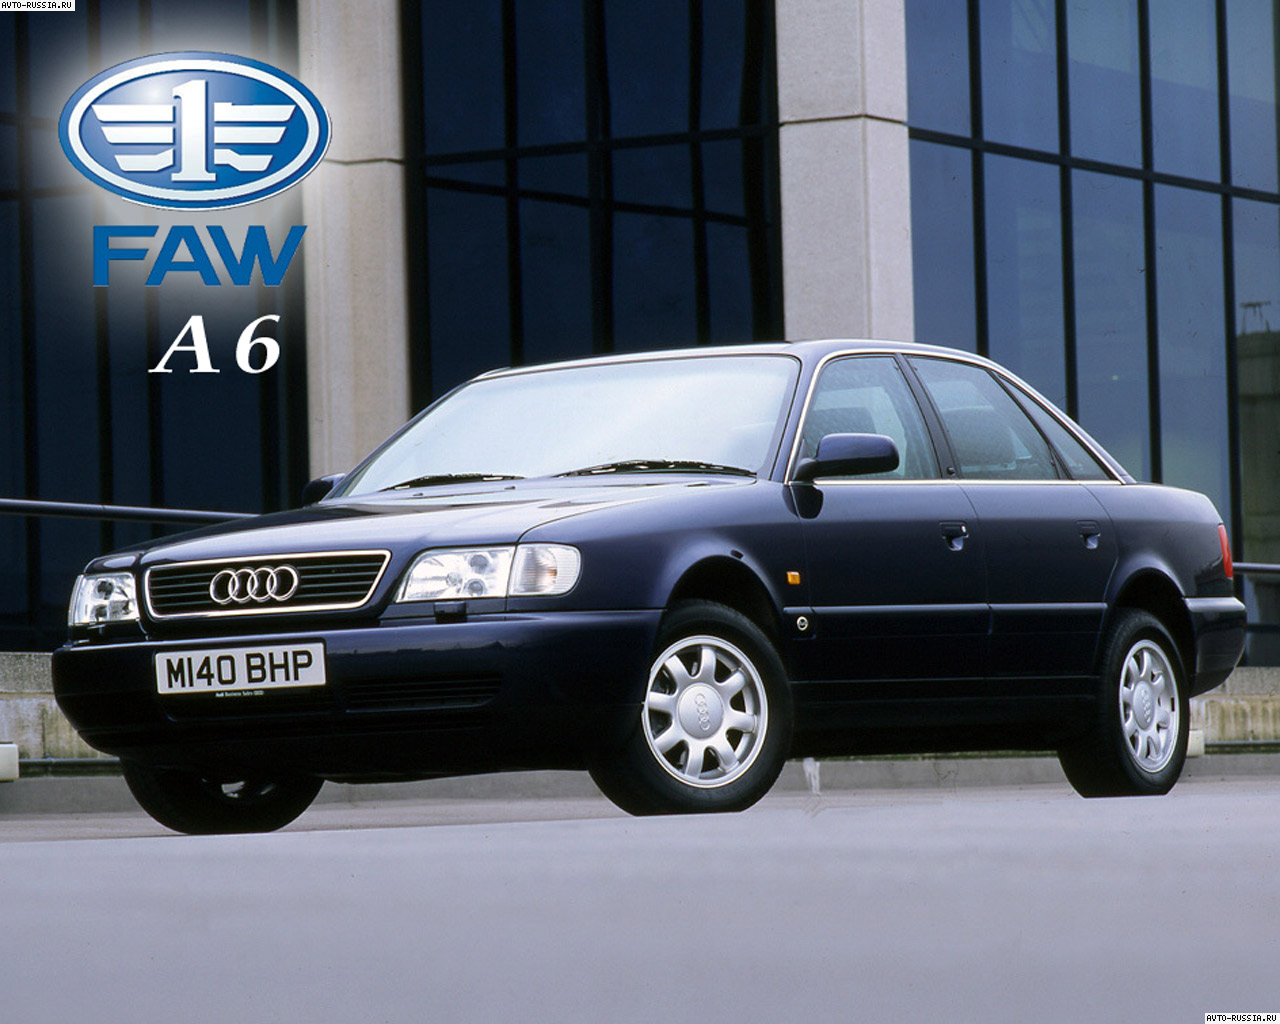 Pictures of faw audi 100 #13